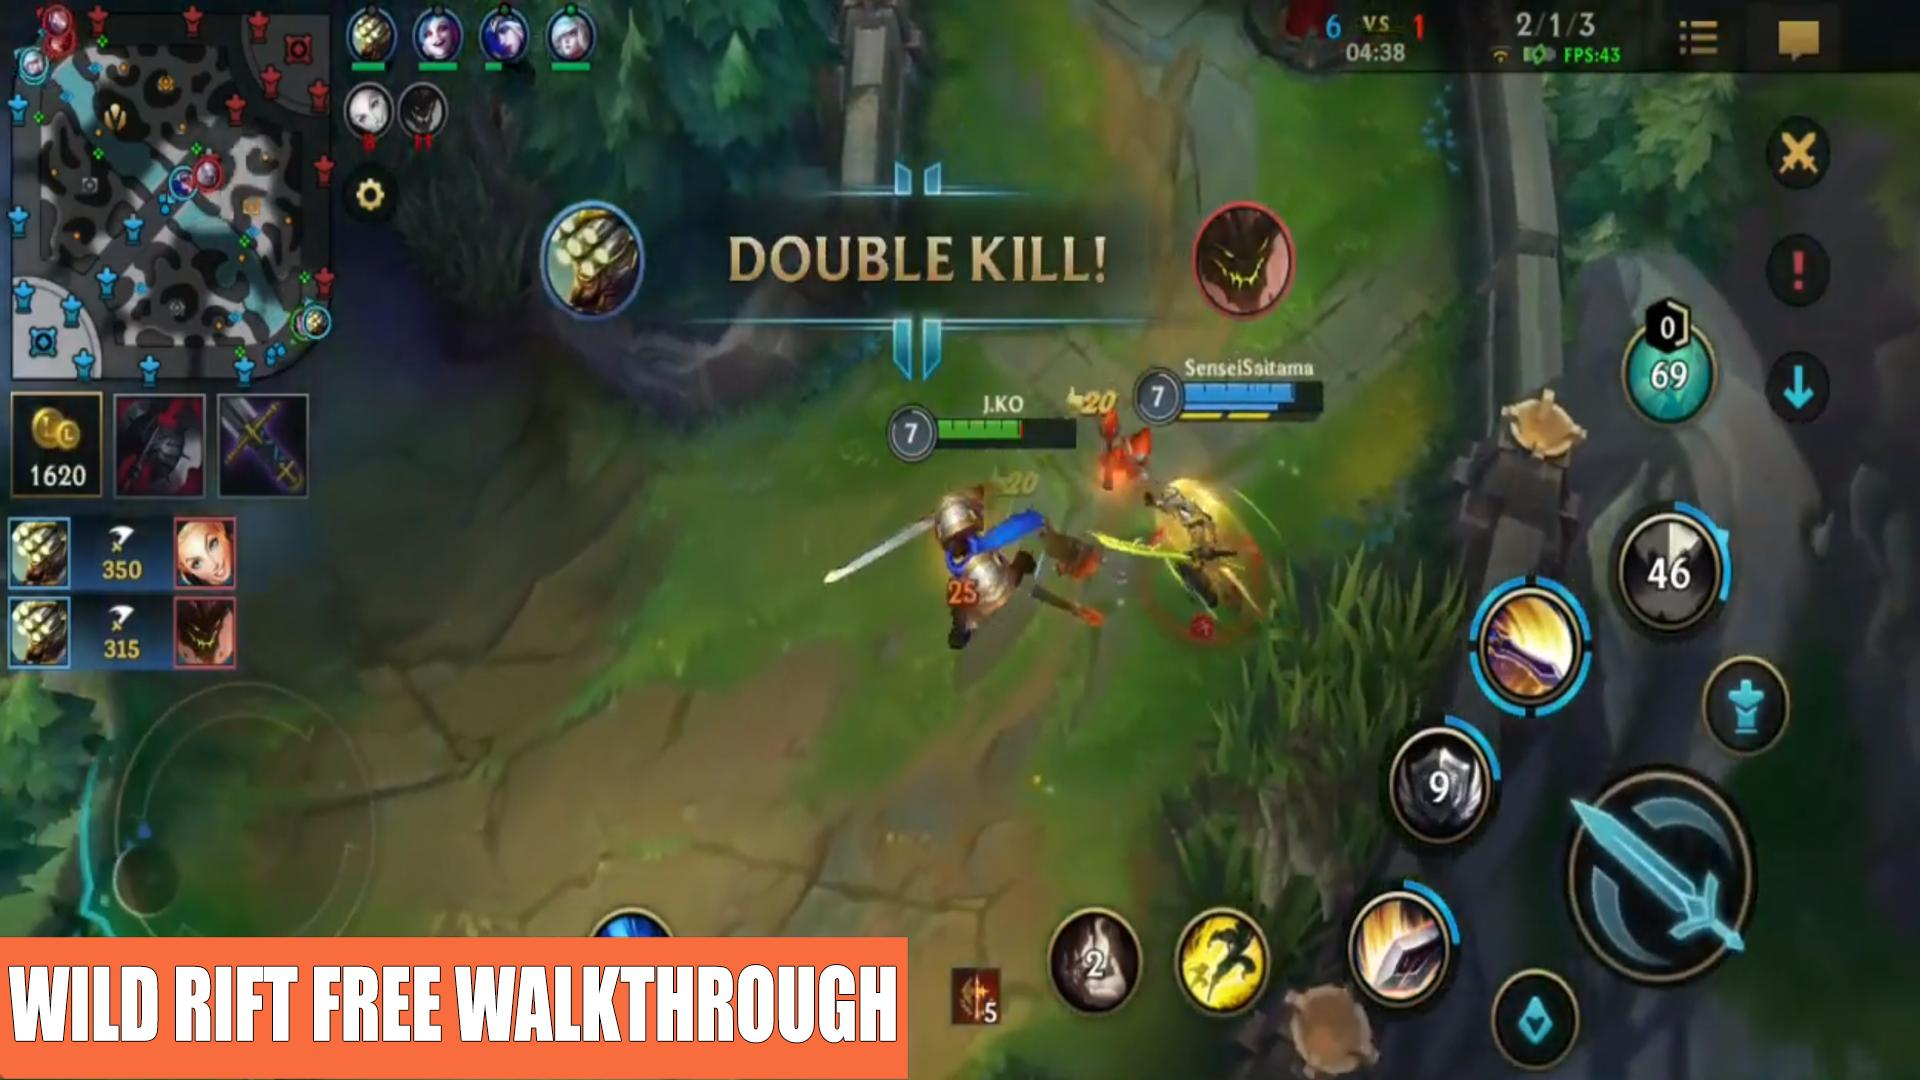 Lol Wild Rift Mode Free Walkthrough For Android Apk Download